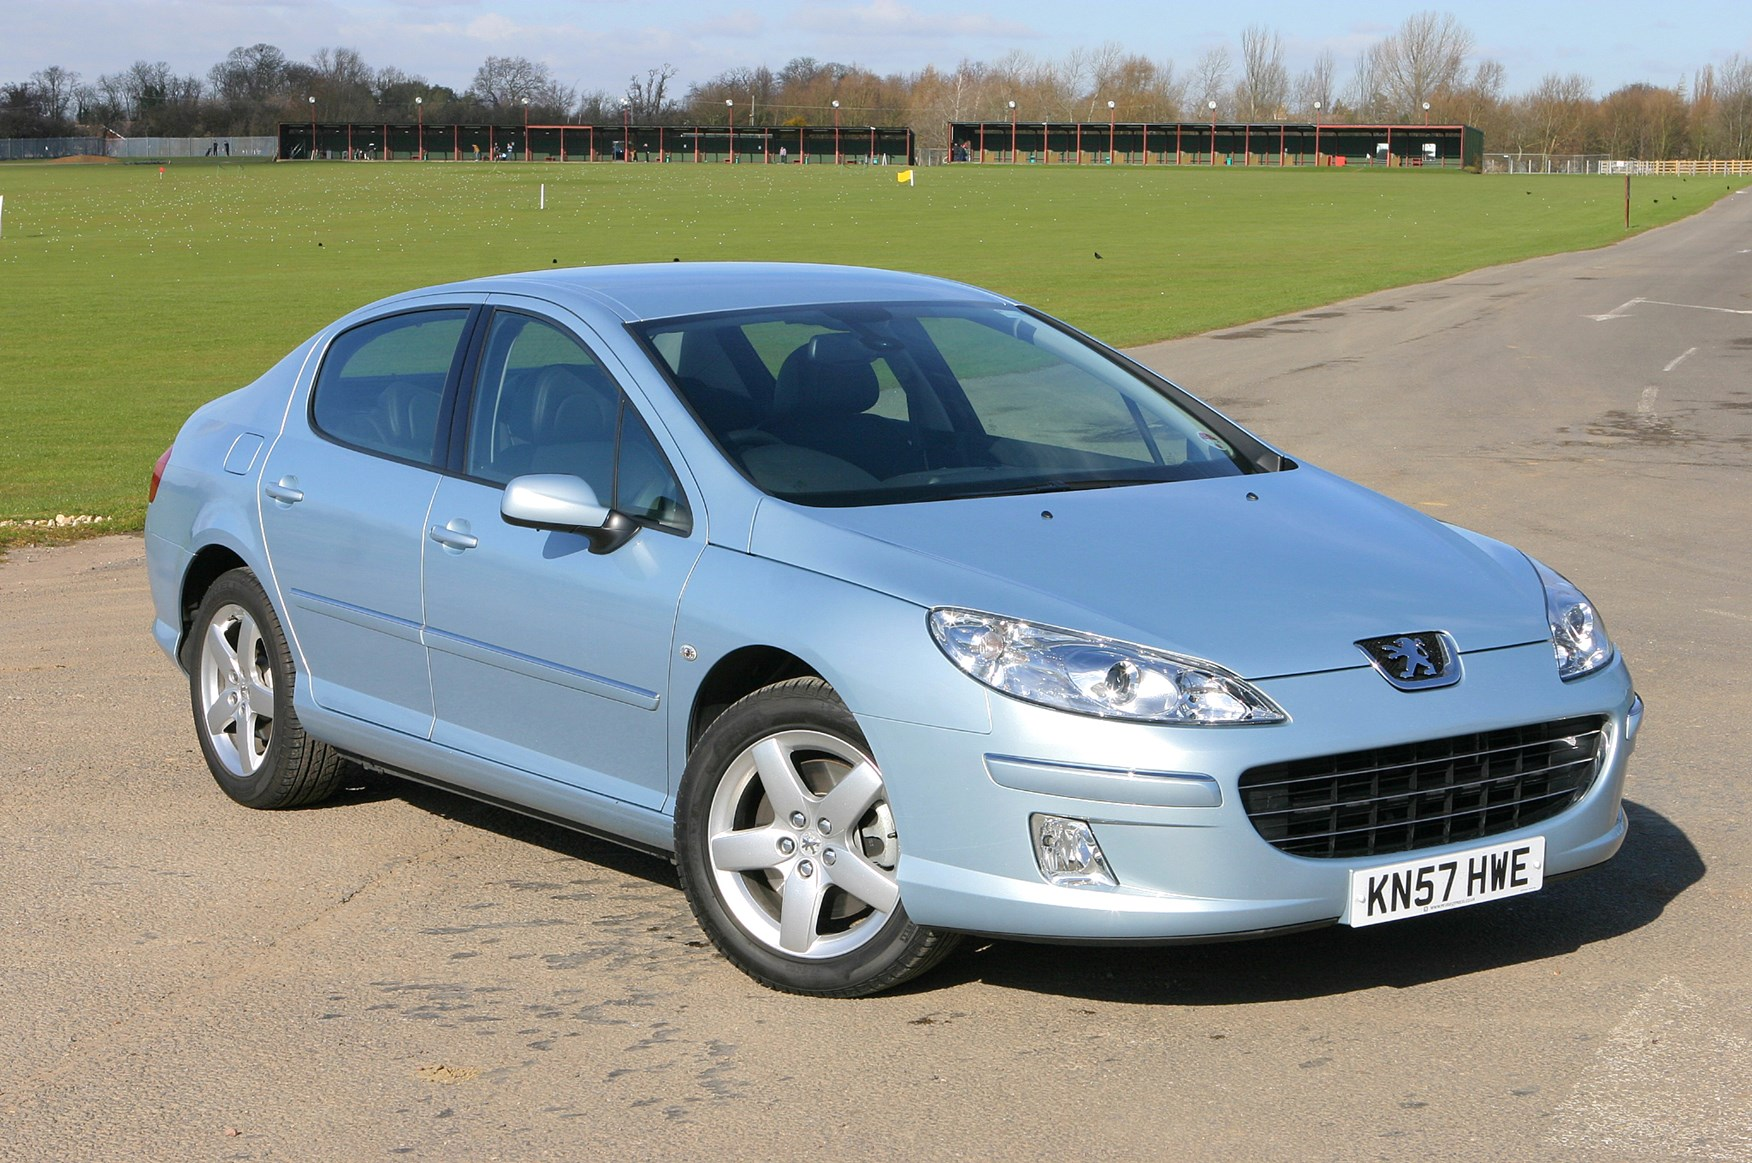 Peugeot 407 Saloon (2004 - 2011) Photos | Parkers